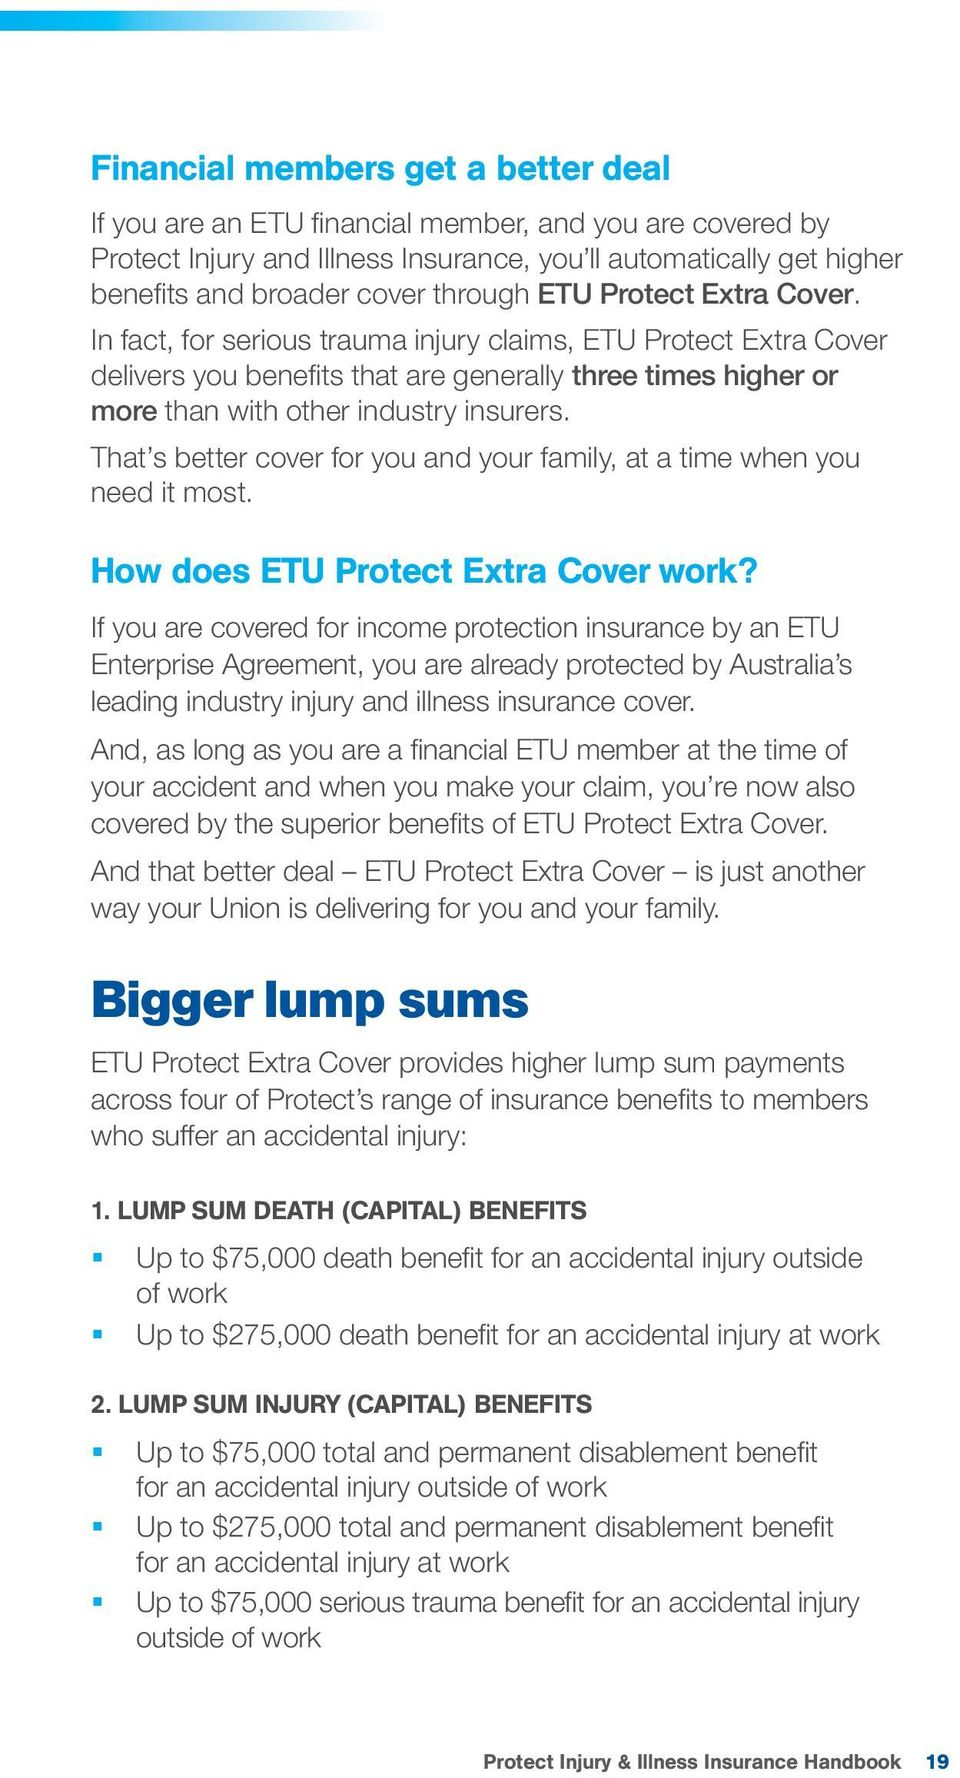 In fact, for serious trauma injury claims, ETU Protect Extra Cover delivers you benefi ts that are generally three times higher or more than with other industry insurers.